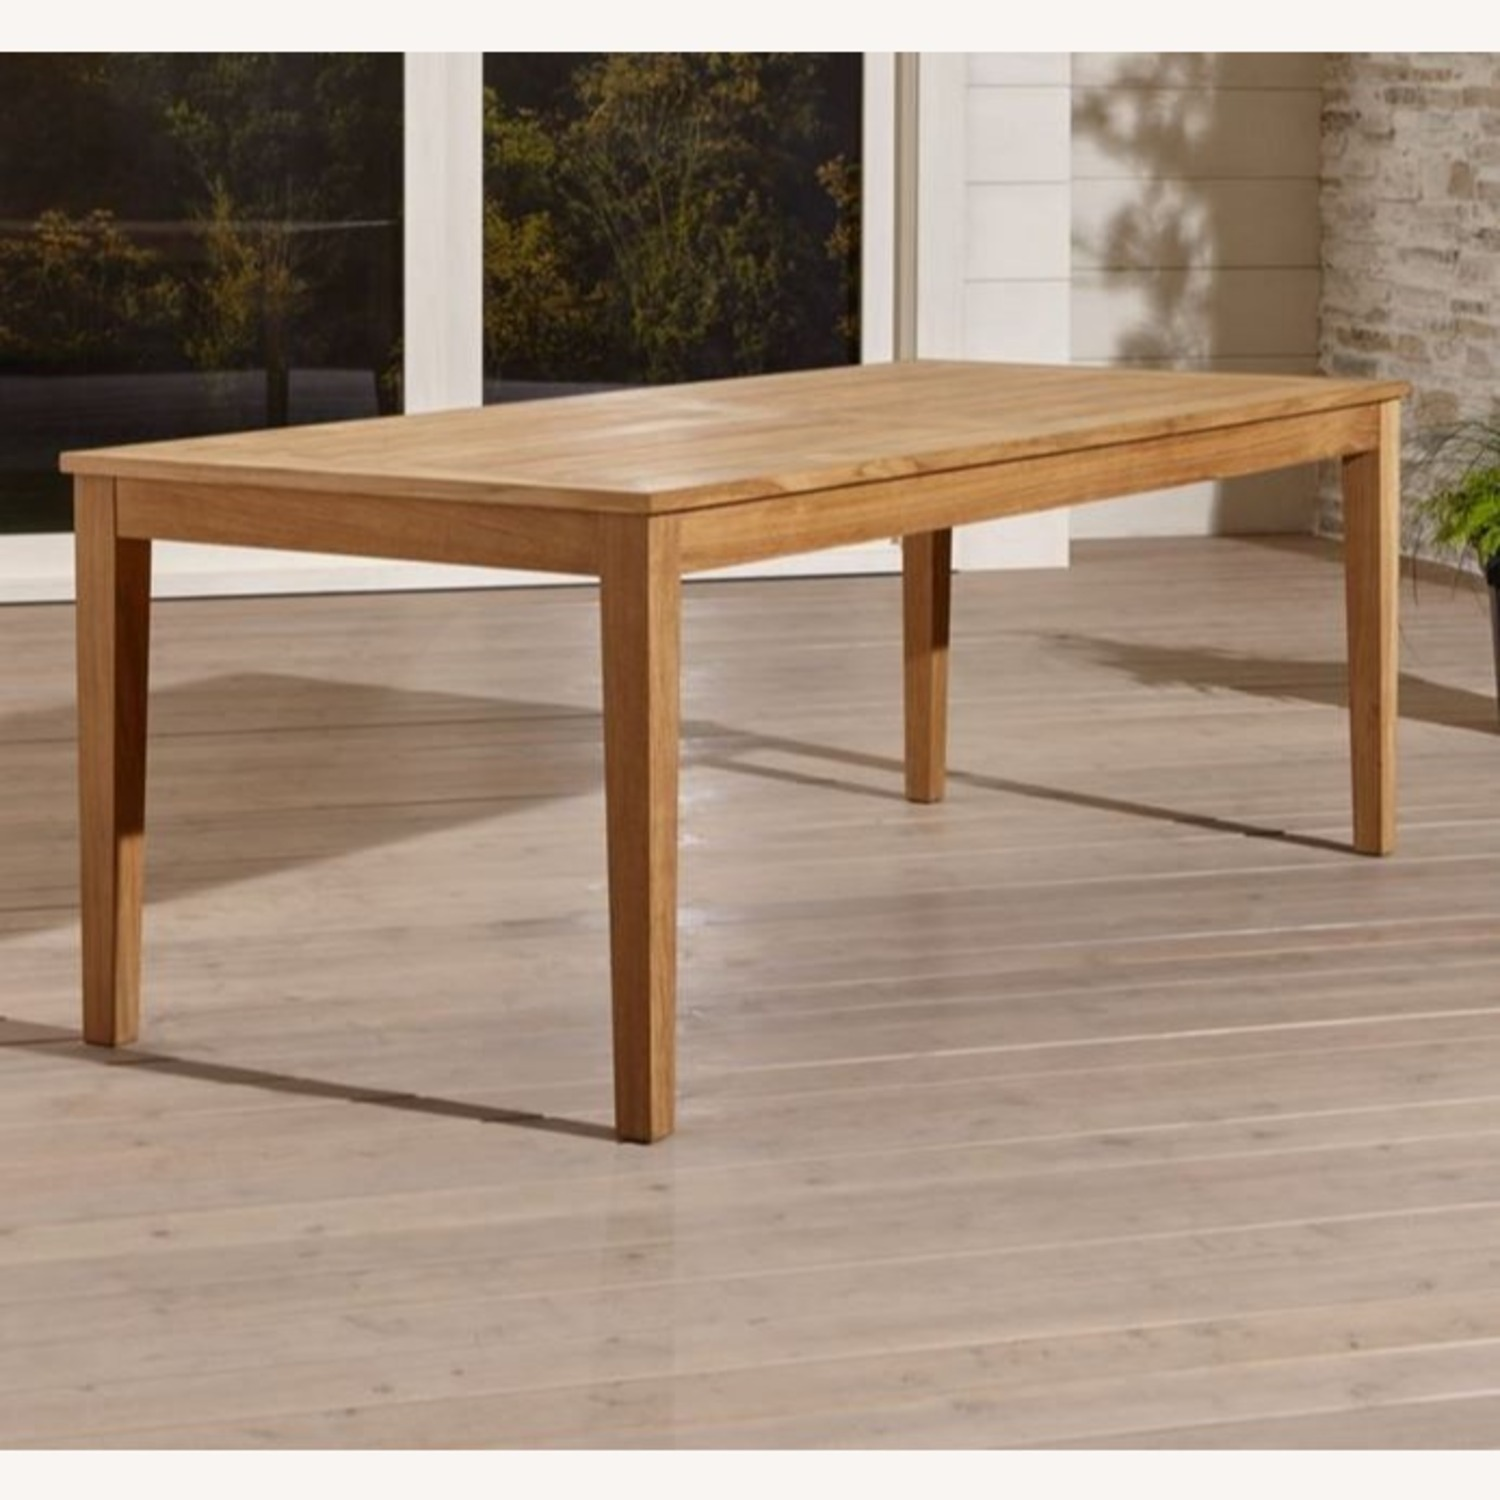 Crate & Barrel Regatta Dining Table Bench Cushions - image-1